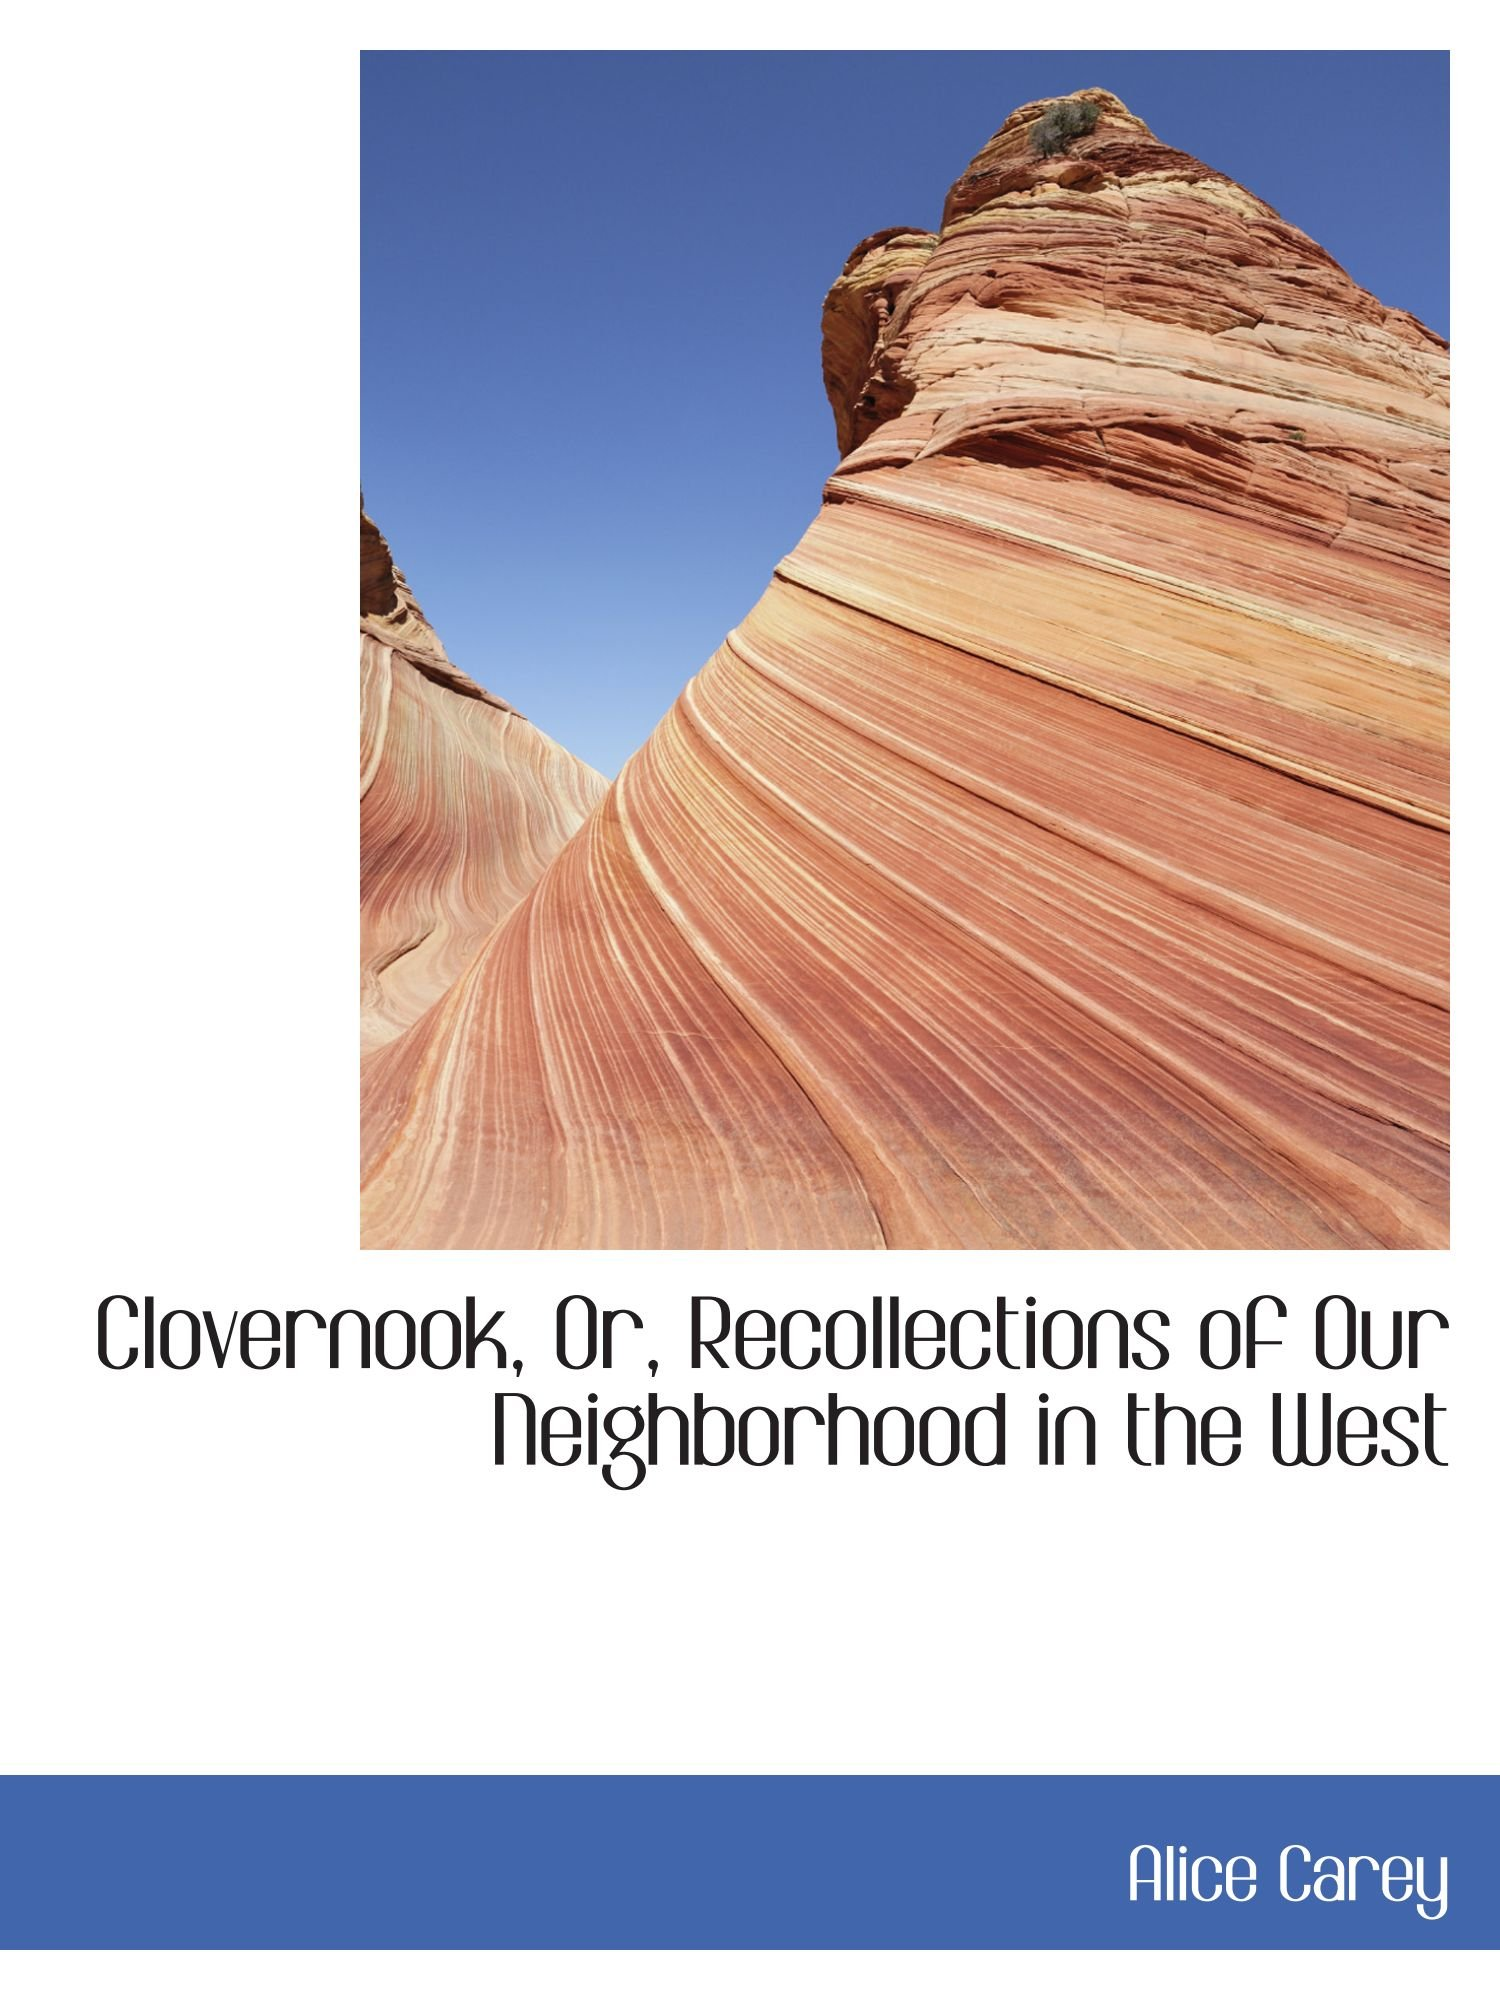 Clovernook, Or, Recollections of Our Neighborhood in the West ebook